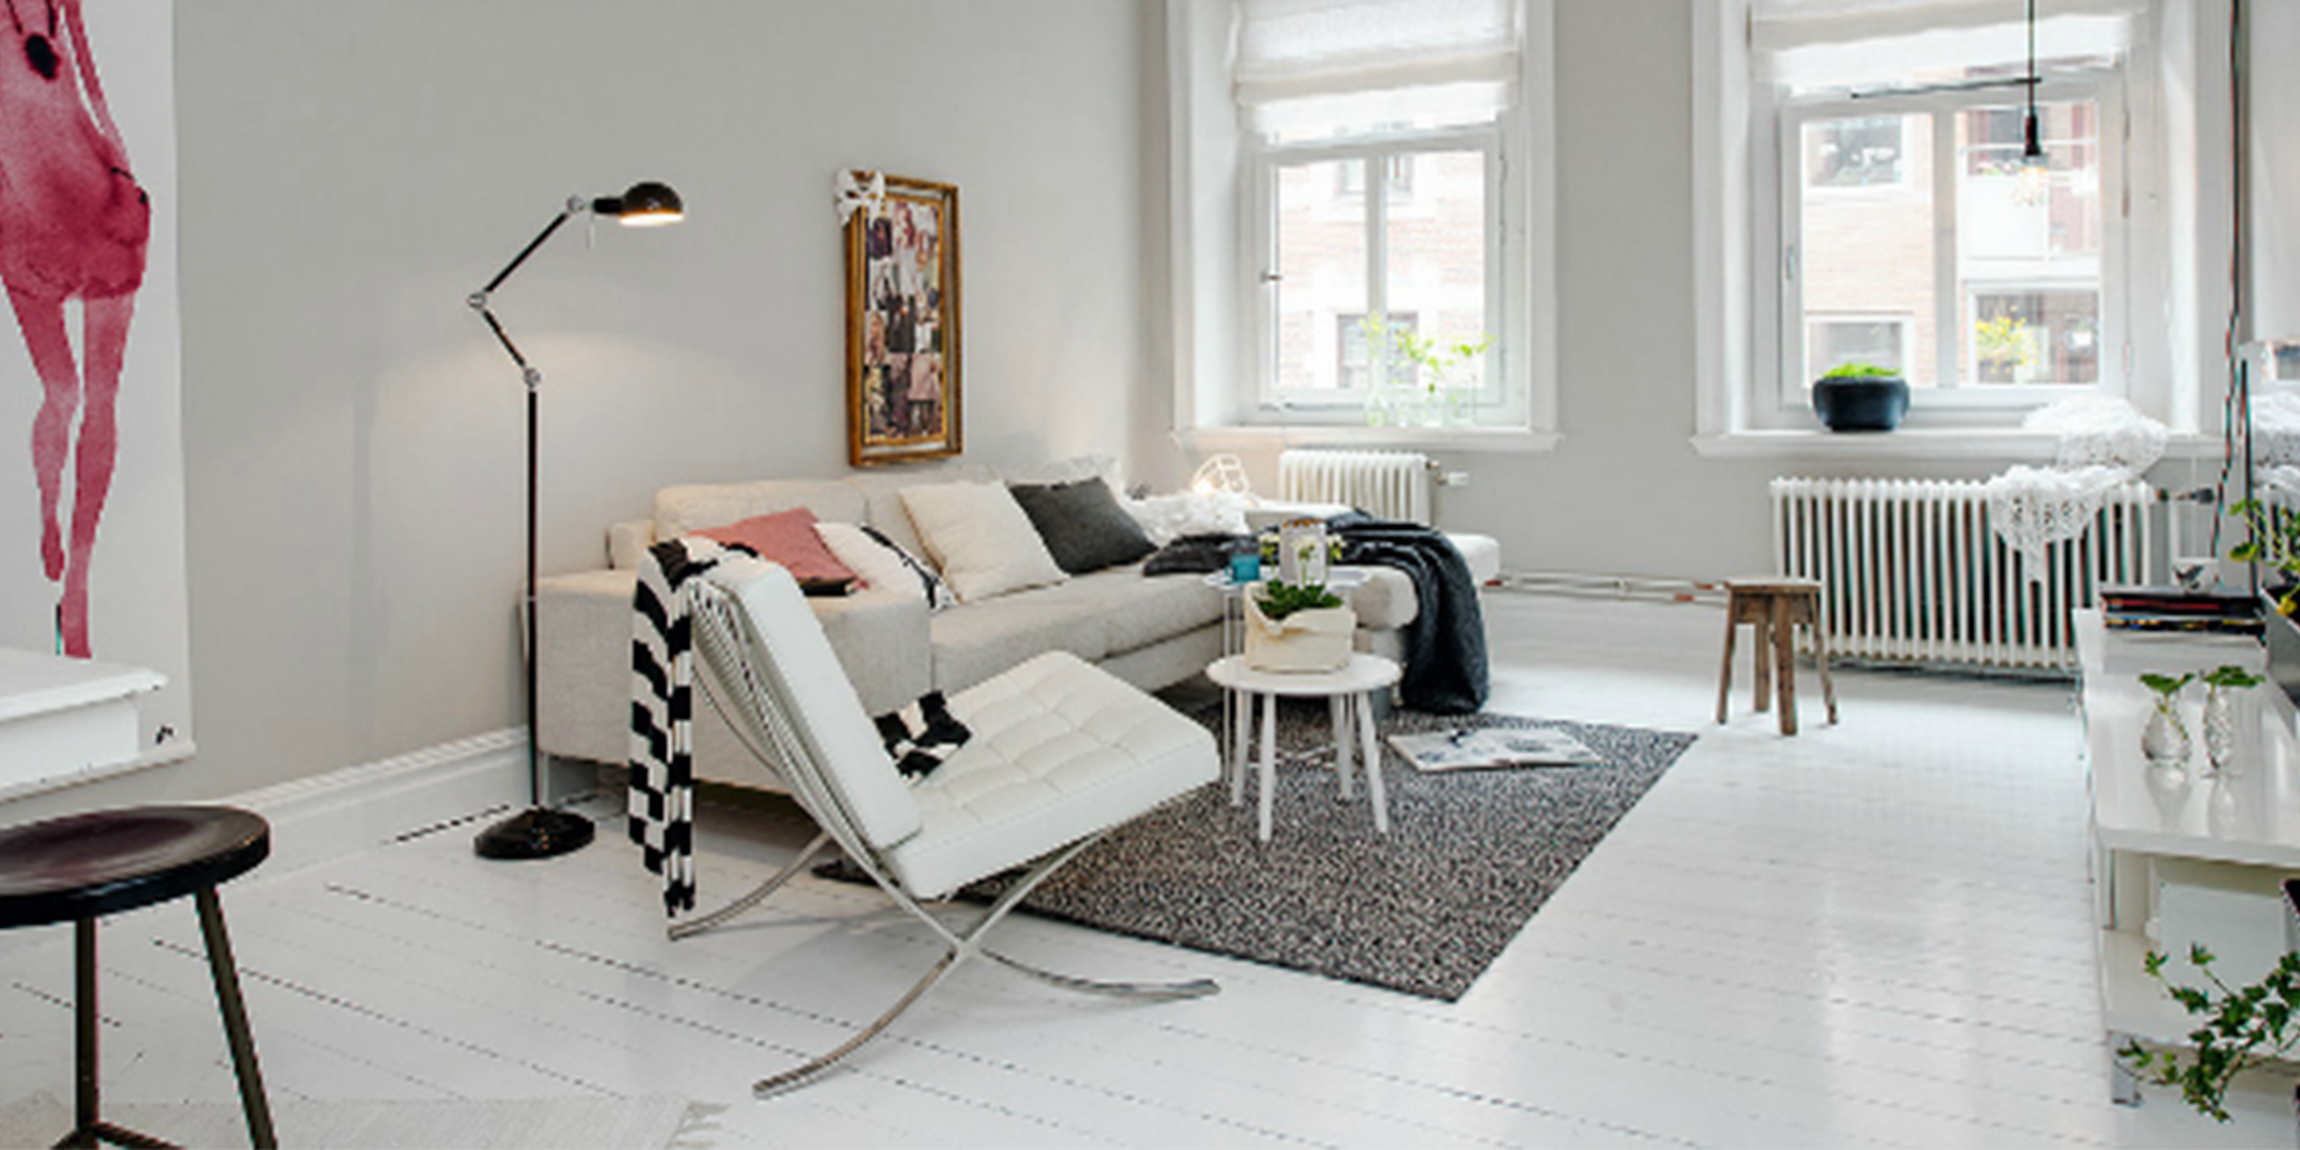 Living Room Featuring a Barcelona Chair